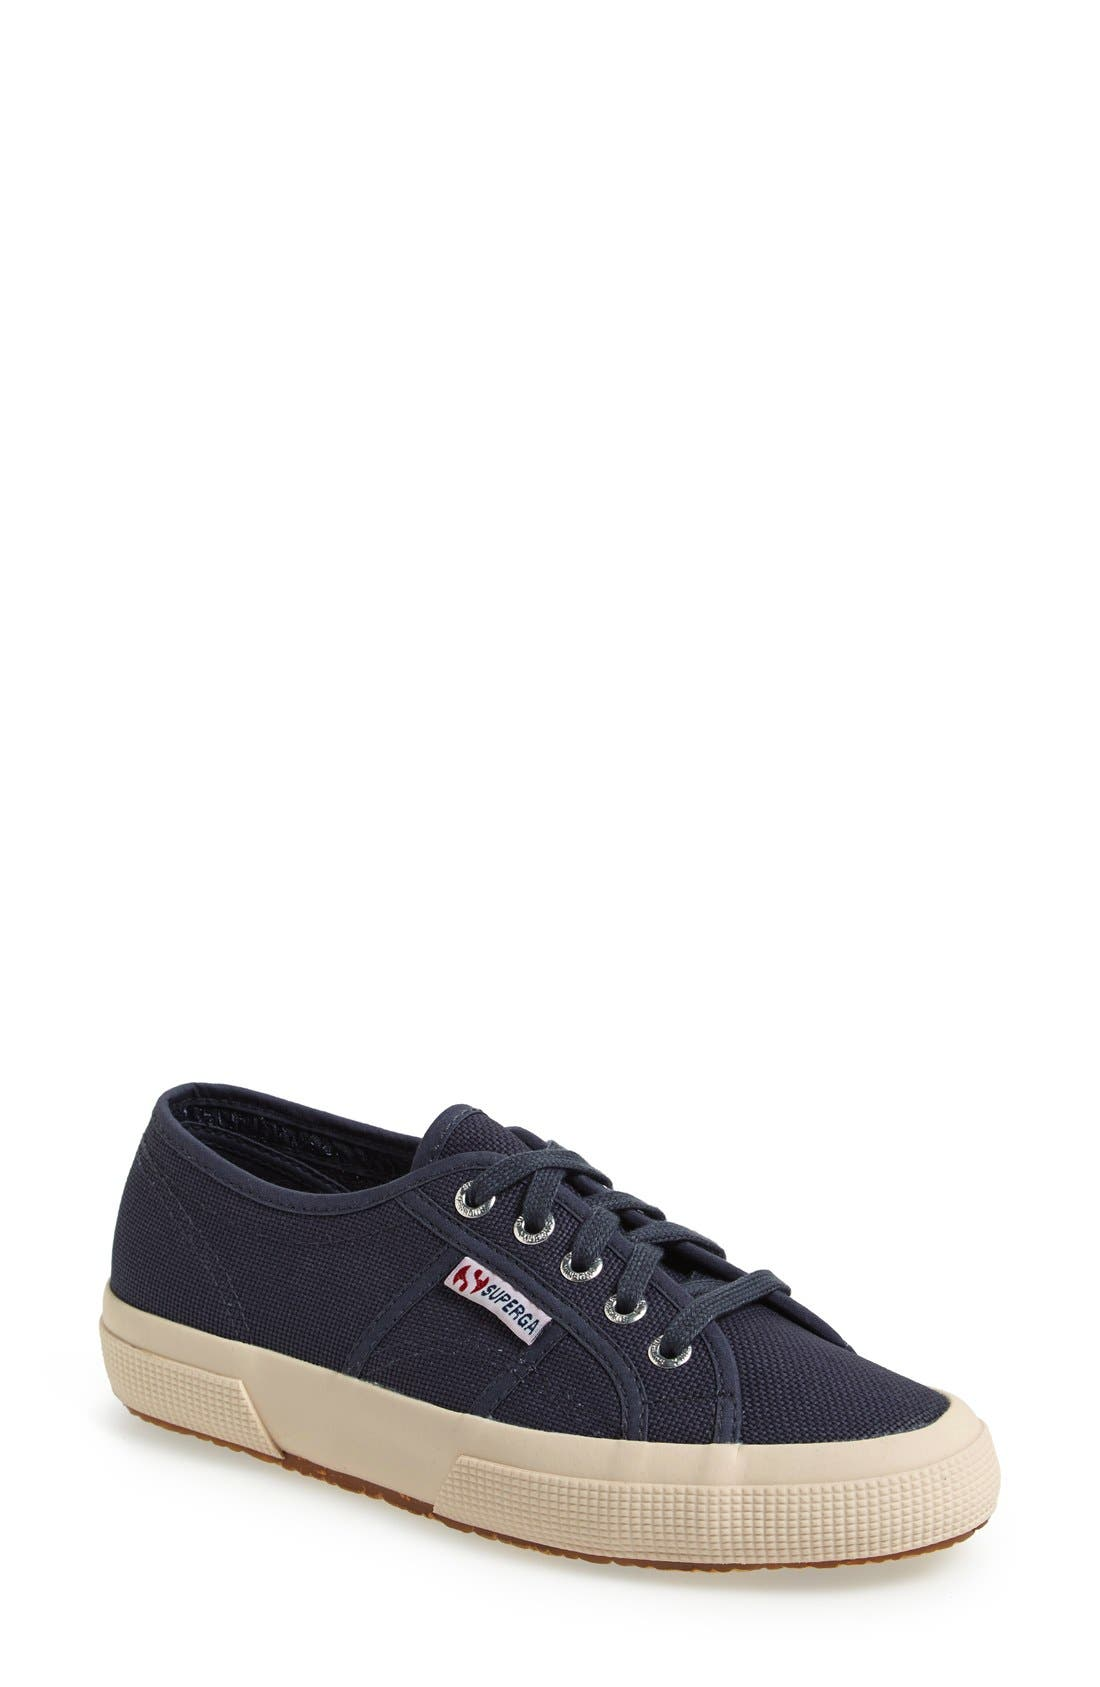 'Cotu' Sneaker,                             Main thumbnail 1, color,                             Navy Canvas